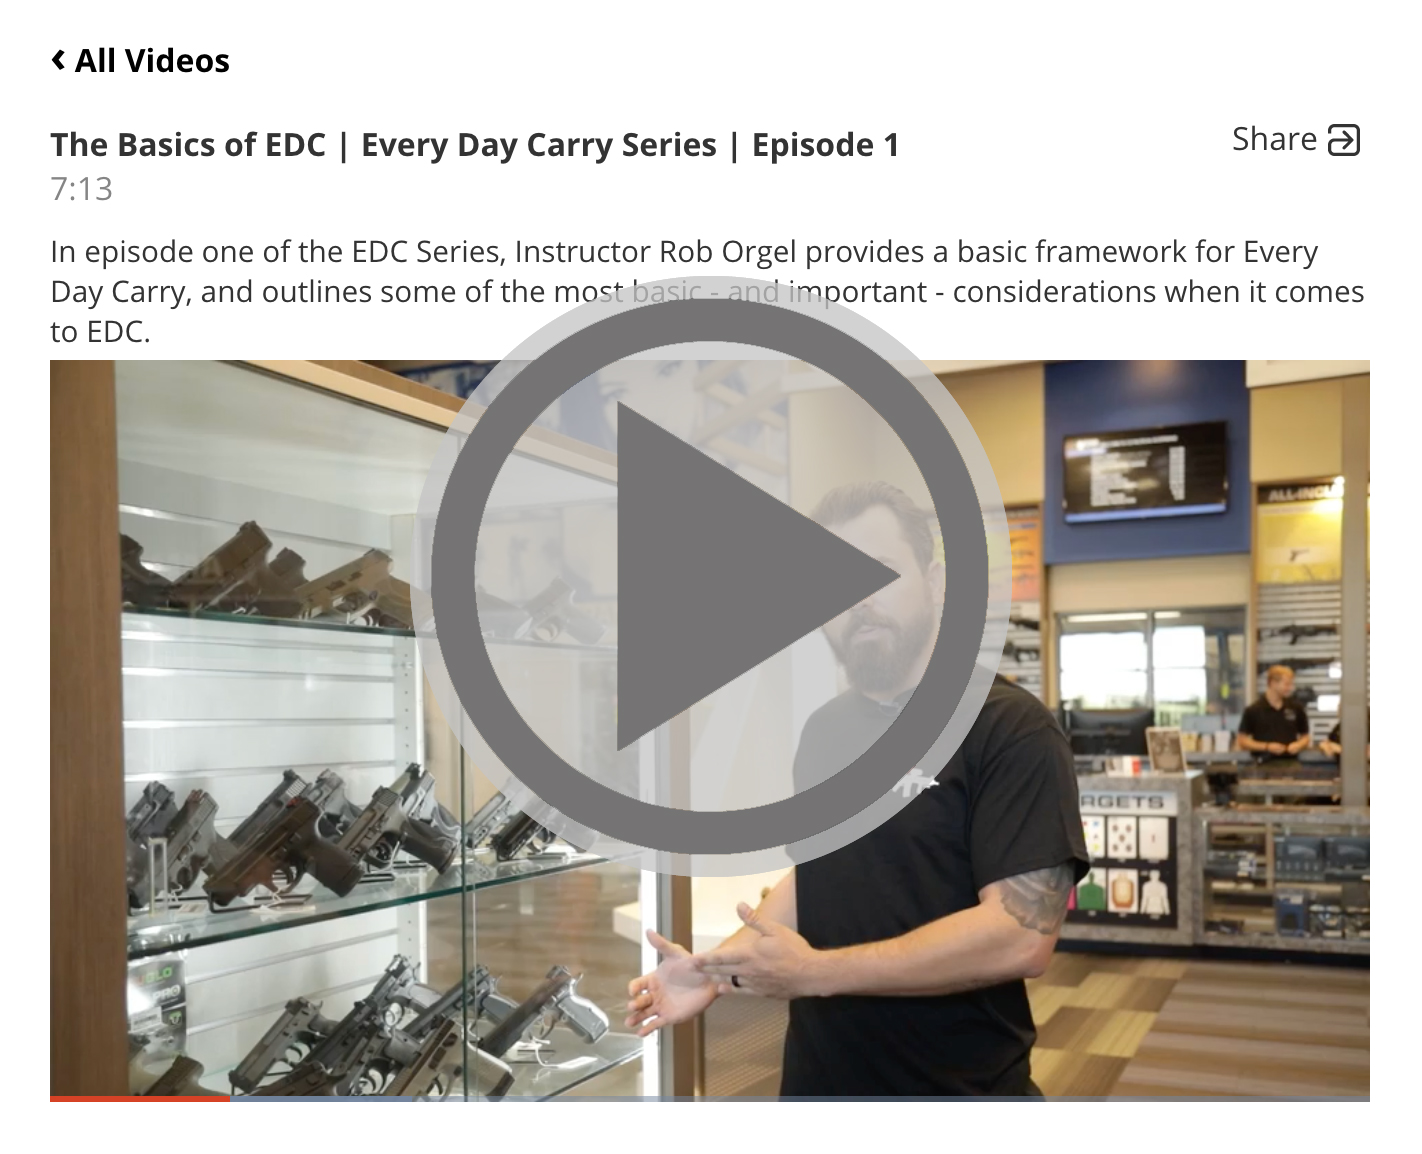 ERT_EDCSeries_Videos